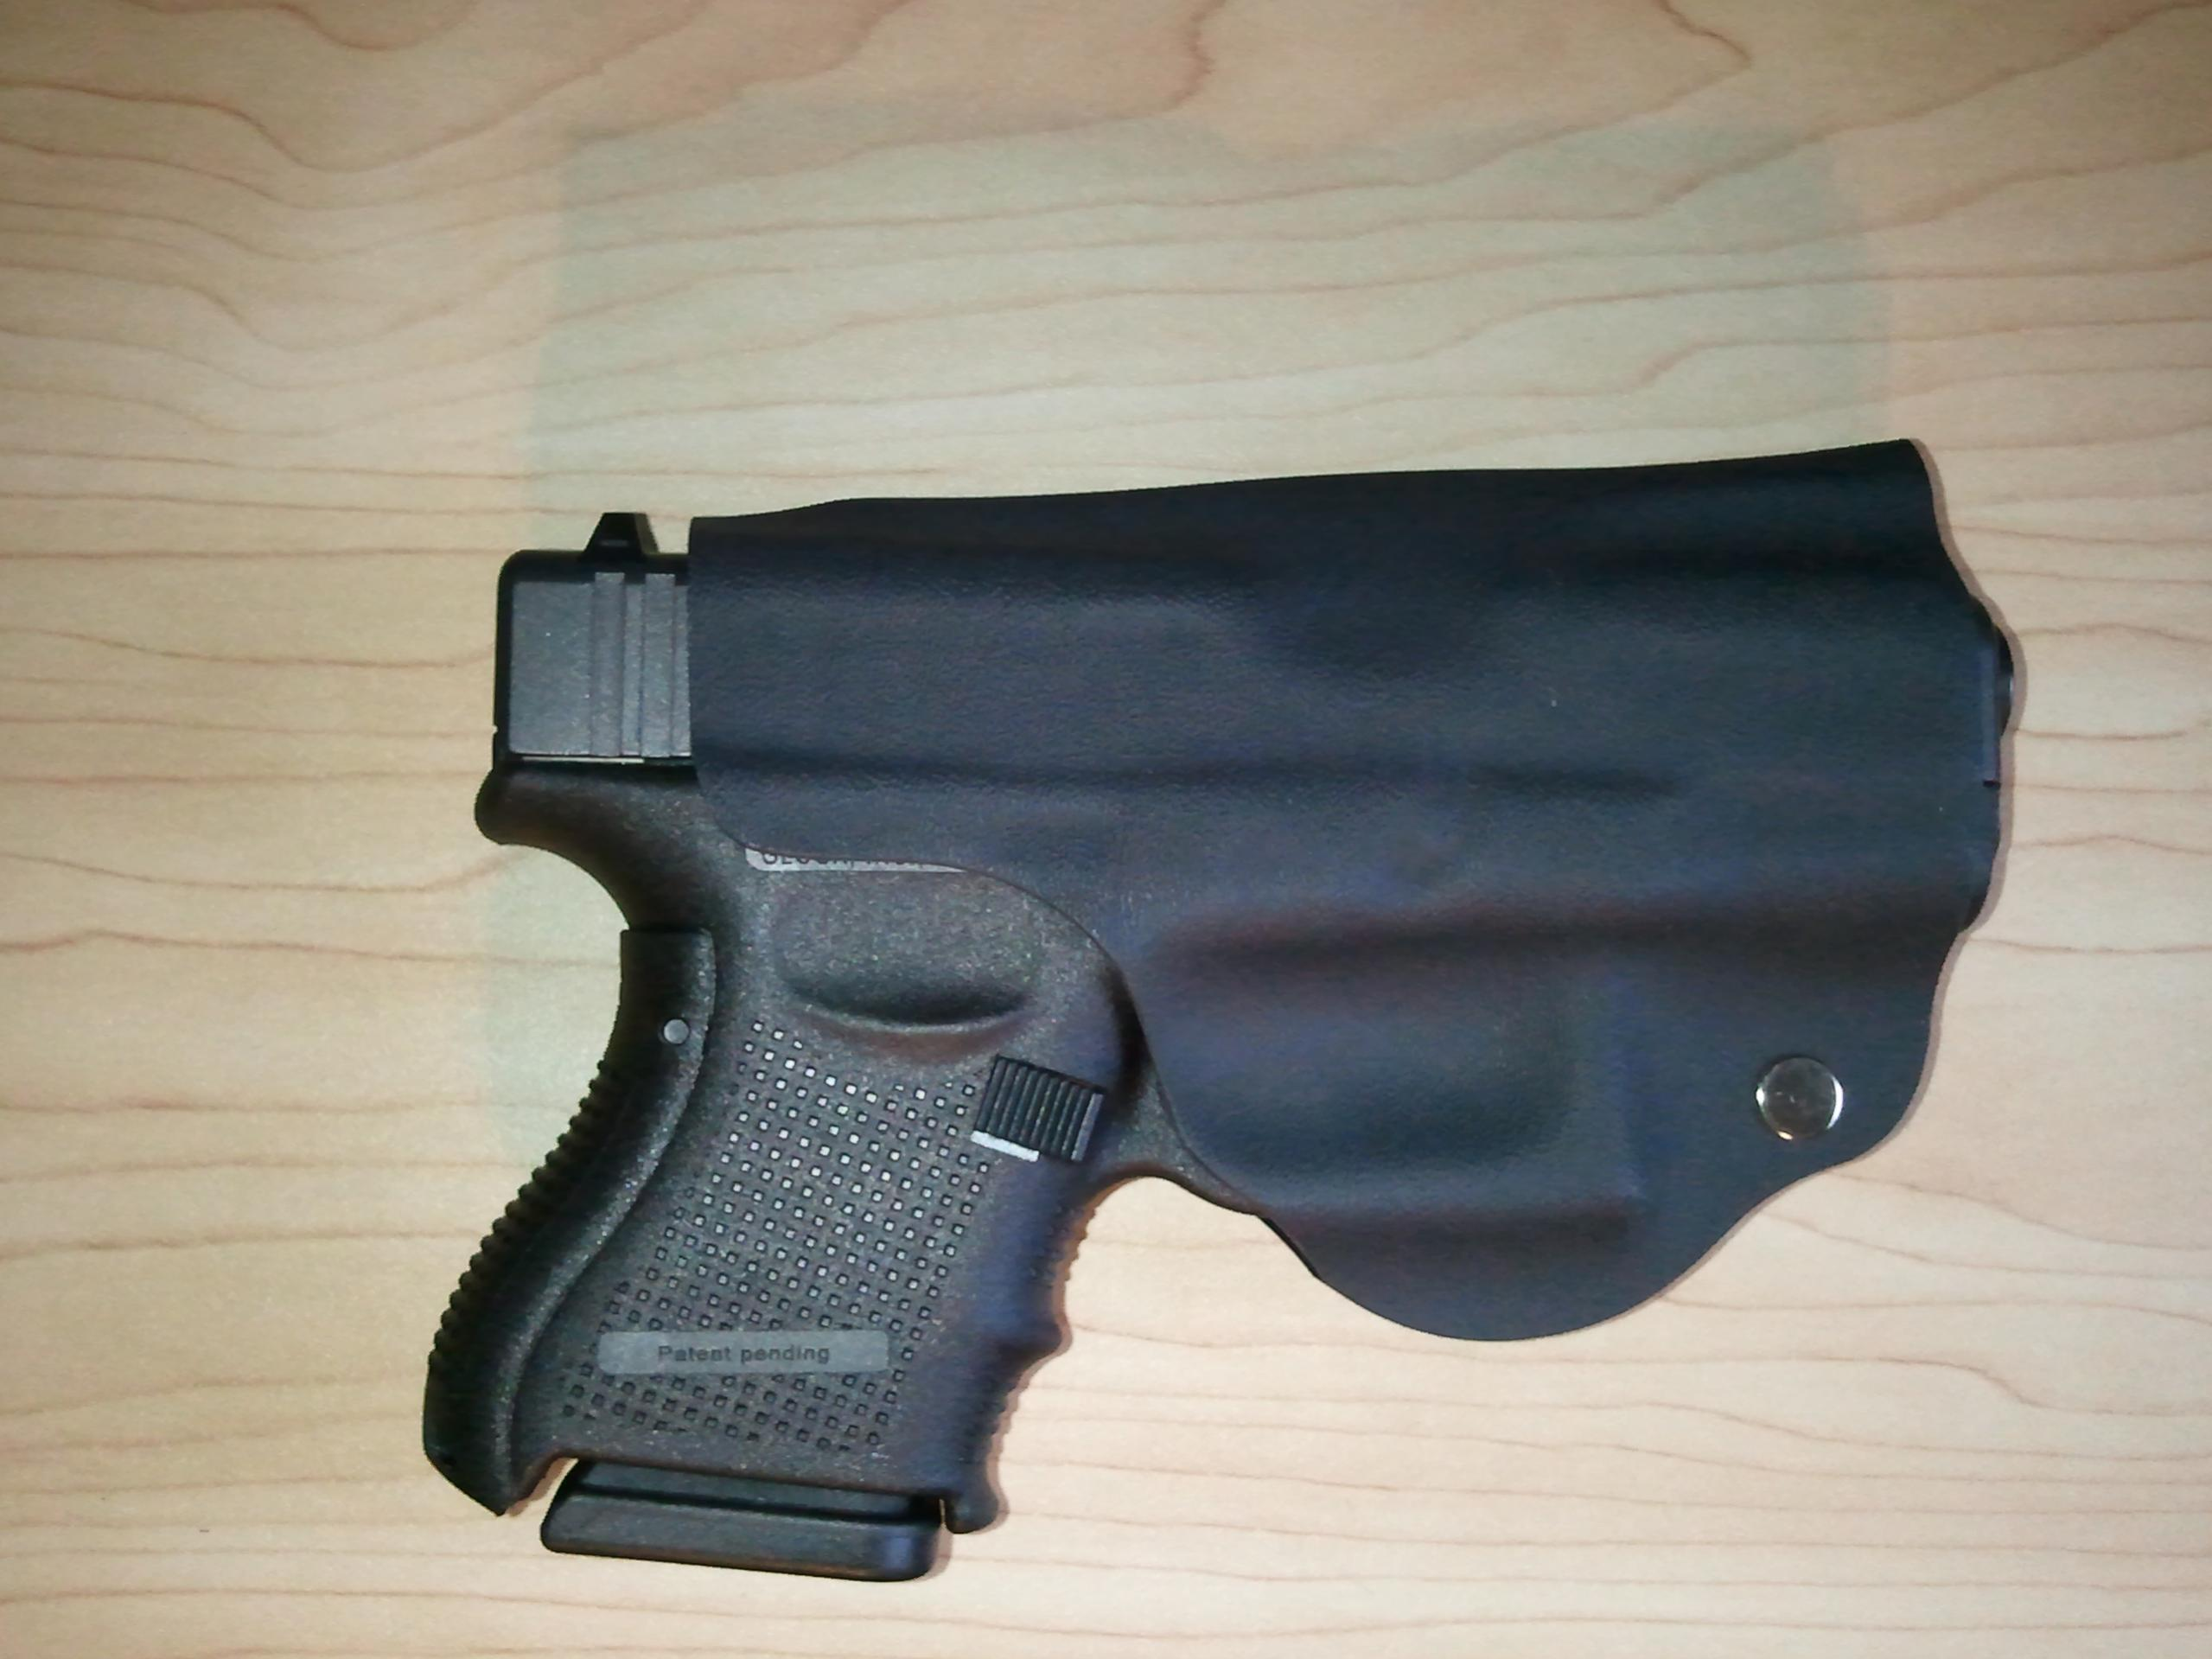 "Foxx ""Trapp"" holster initial thoughts-2012-11-01-15.10.40.jpg"